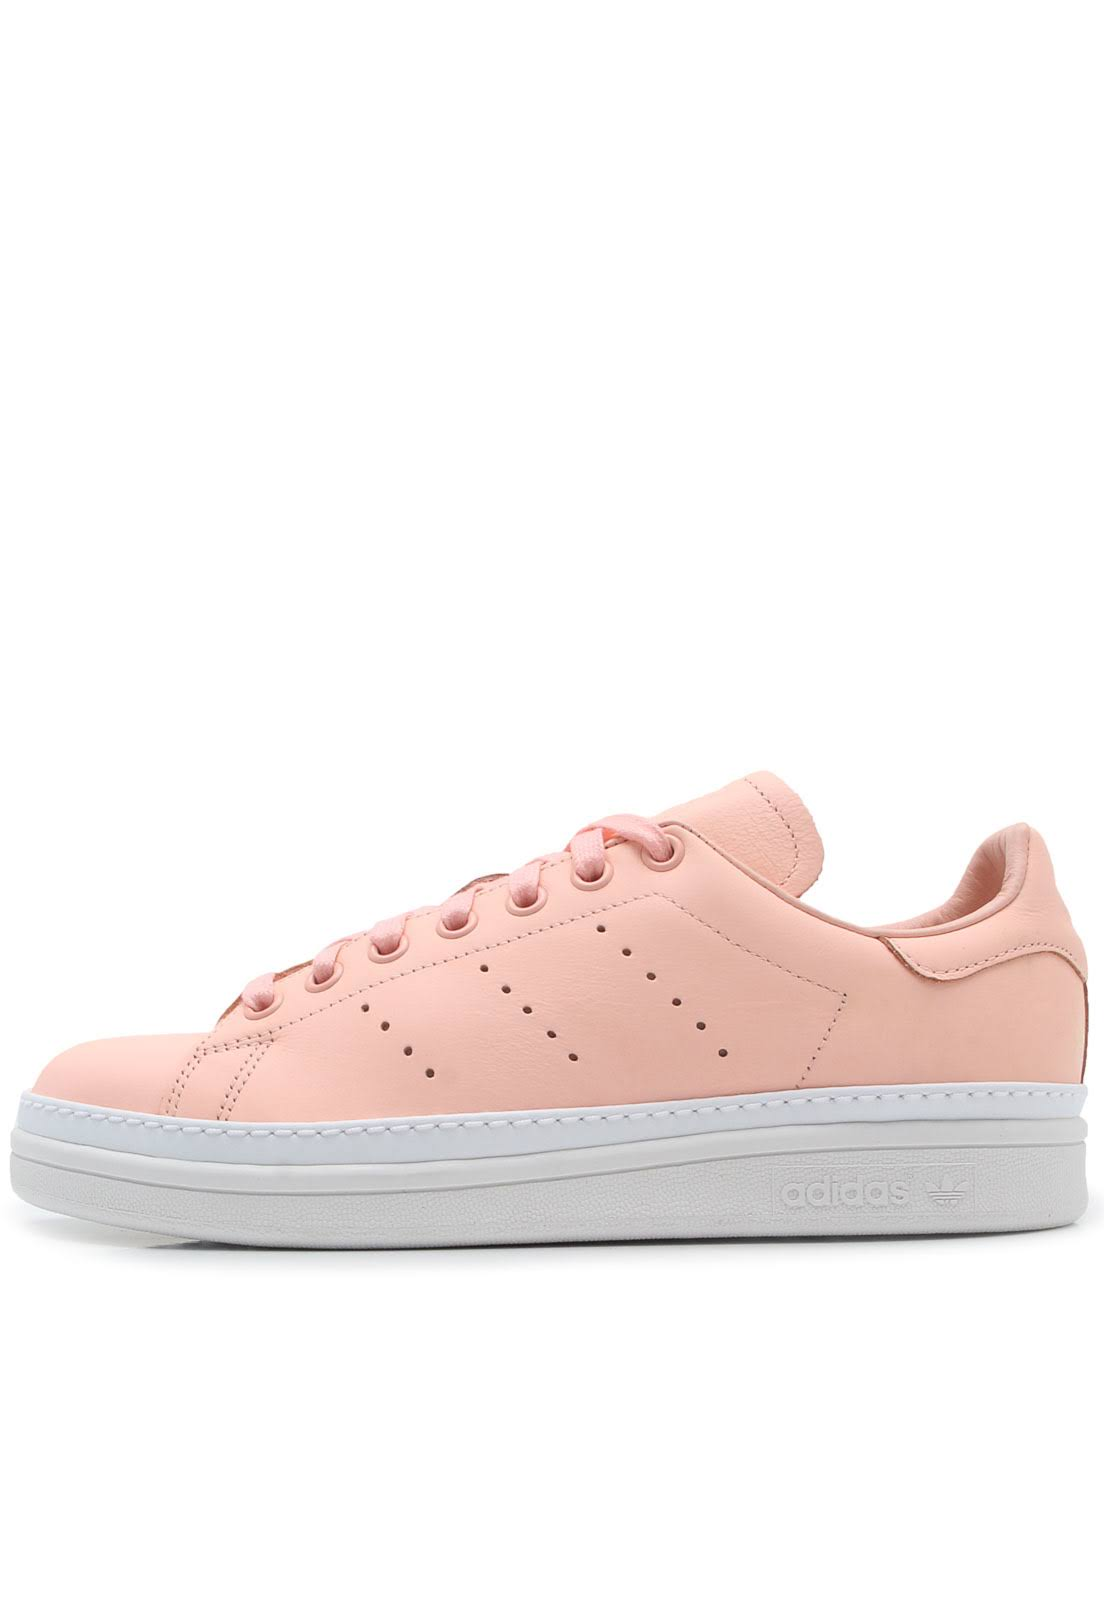 Smith Adidas Originals Stan New Rose Bold Dafiti Chaussures ww7S8x